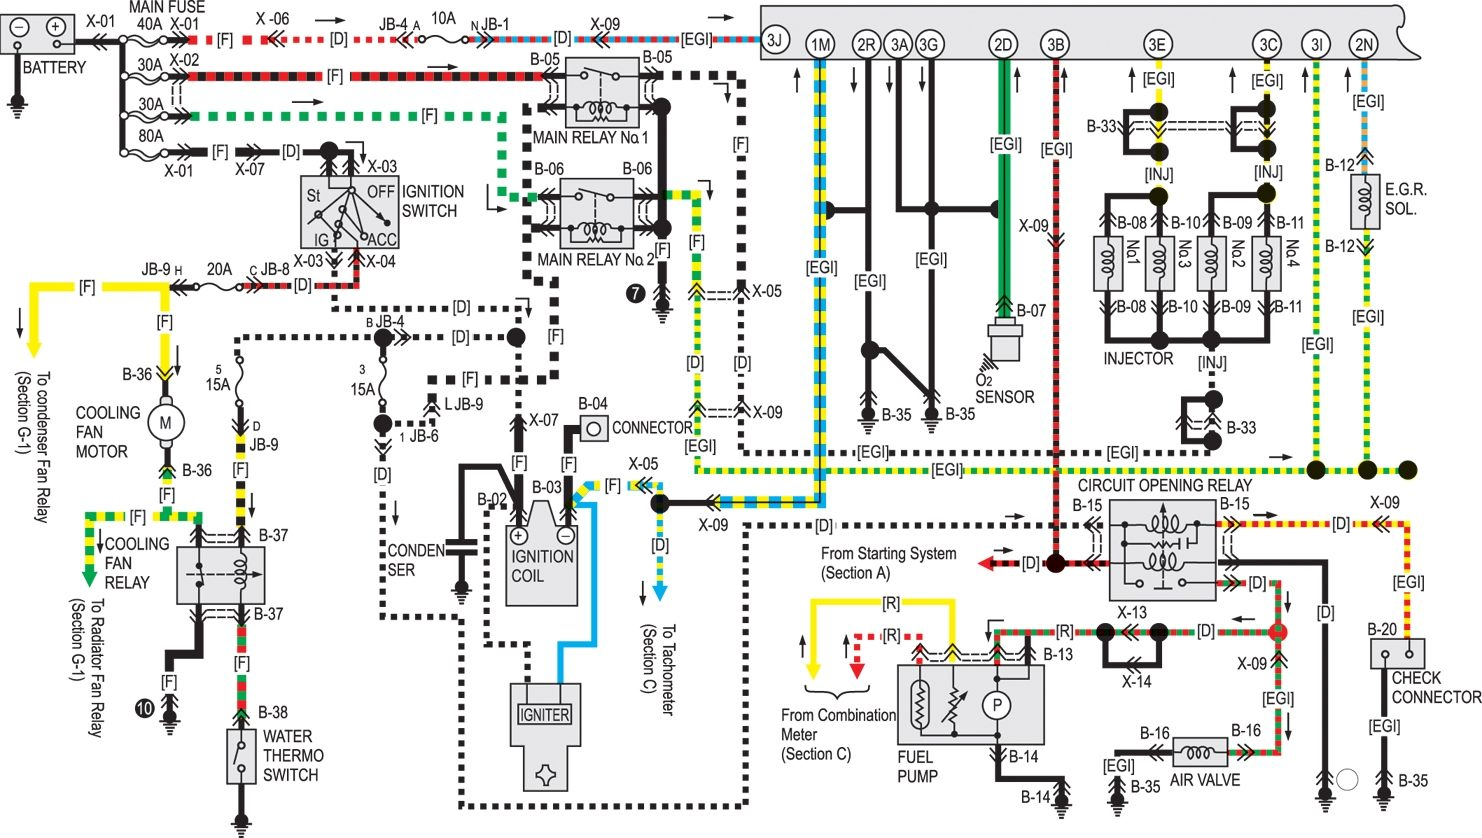 1988 Ford Distributor Wiring Diagram Schematics For Www Topsimages Com Ignition Module